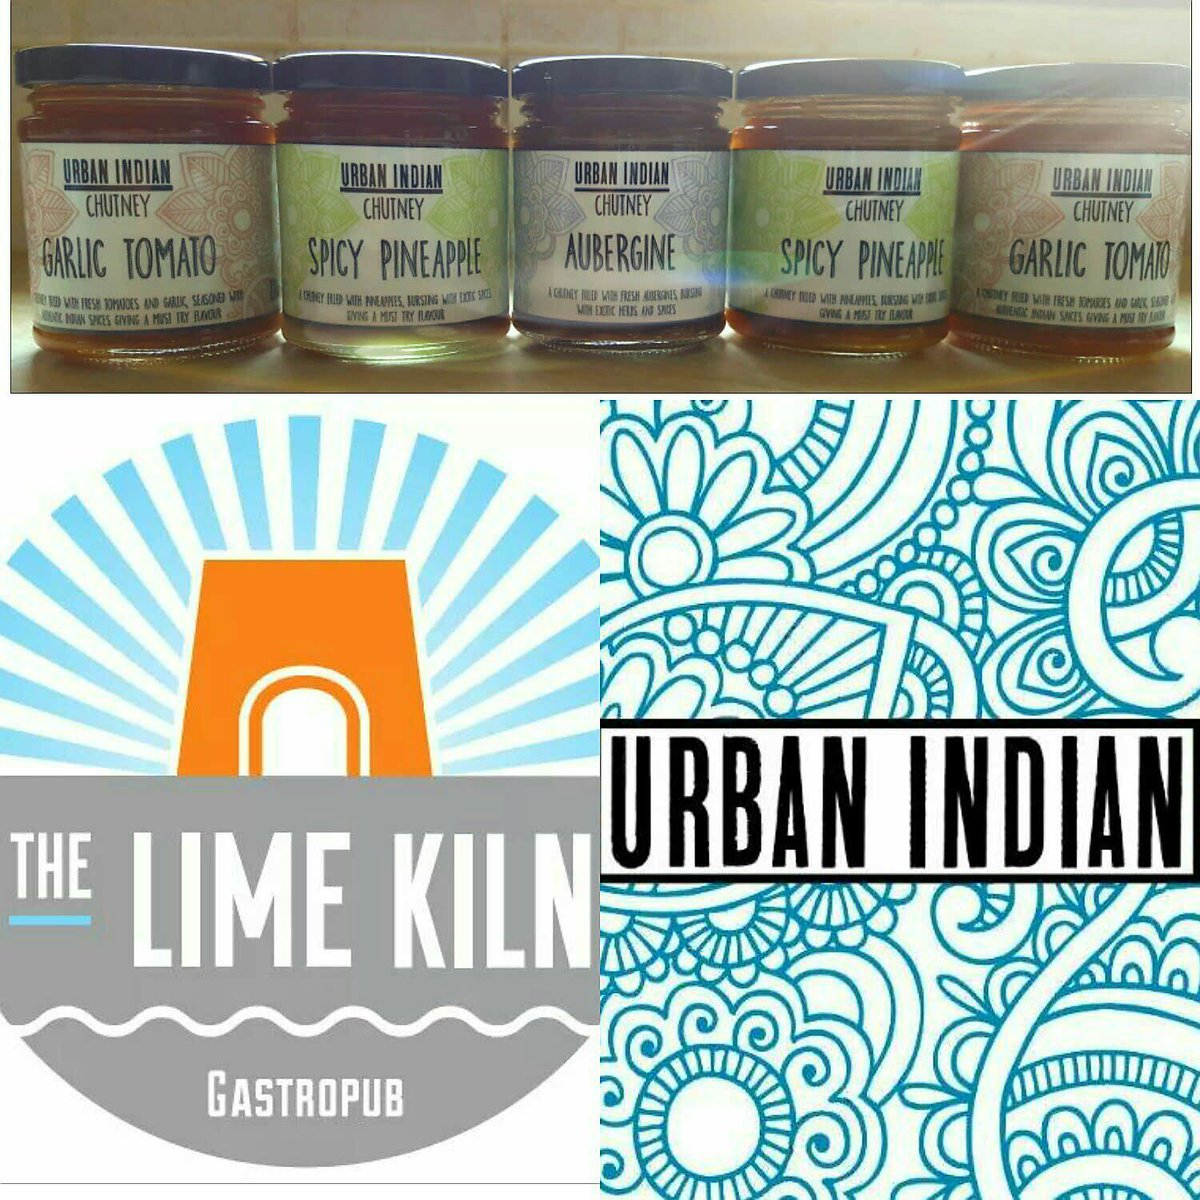 Happy to announce our chutneys are now available at Lime Kiln Julianstown #louthchat #shoplocal @meathtourism <br>http://pic.twitter.com/ILMcpIrCTq